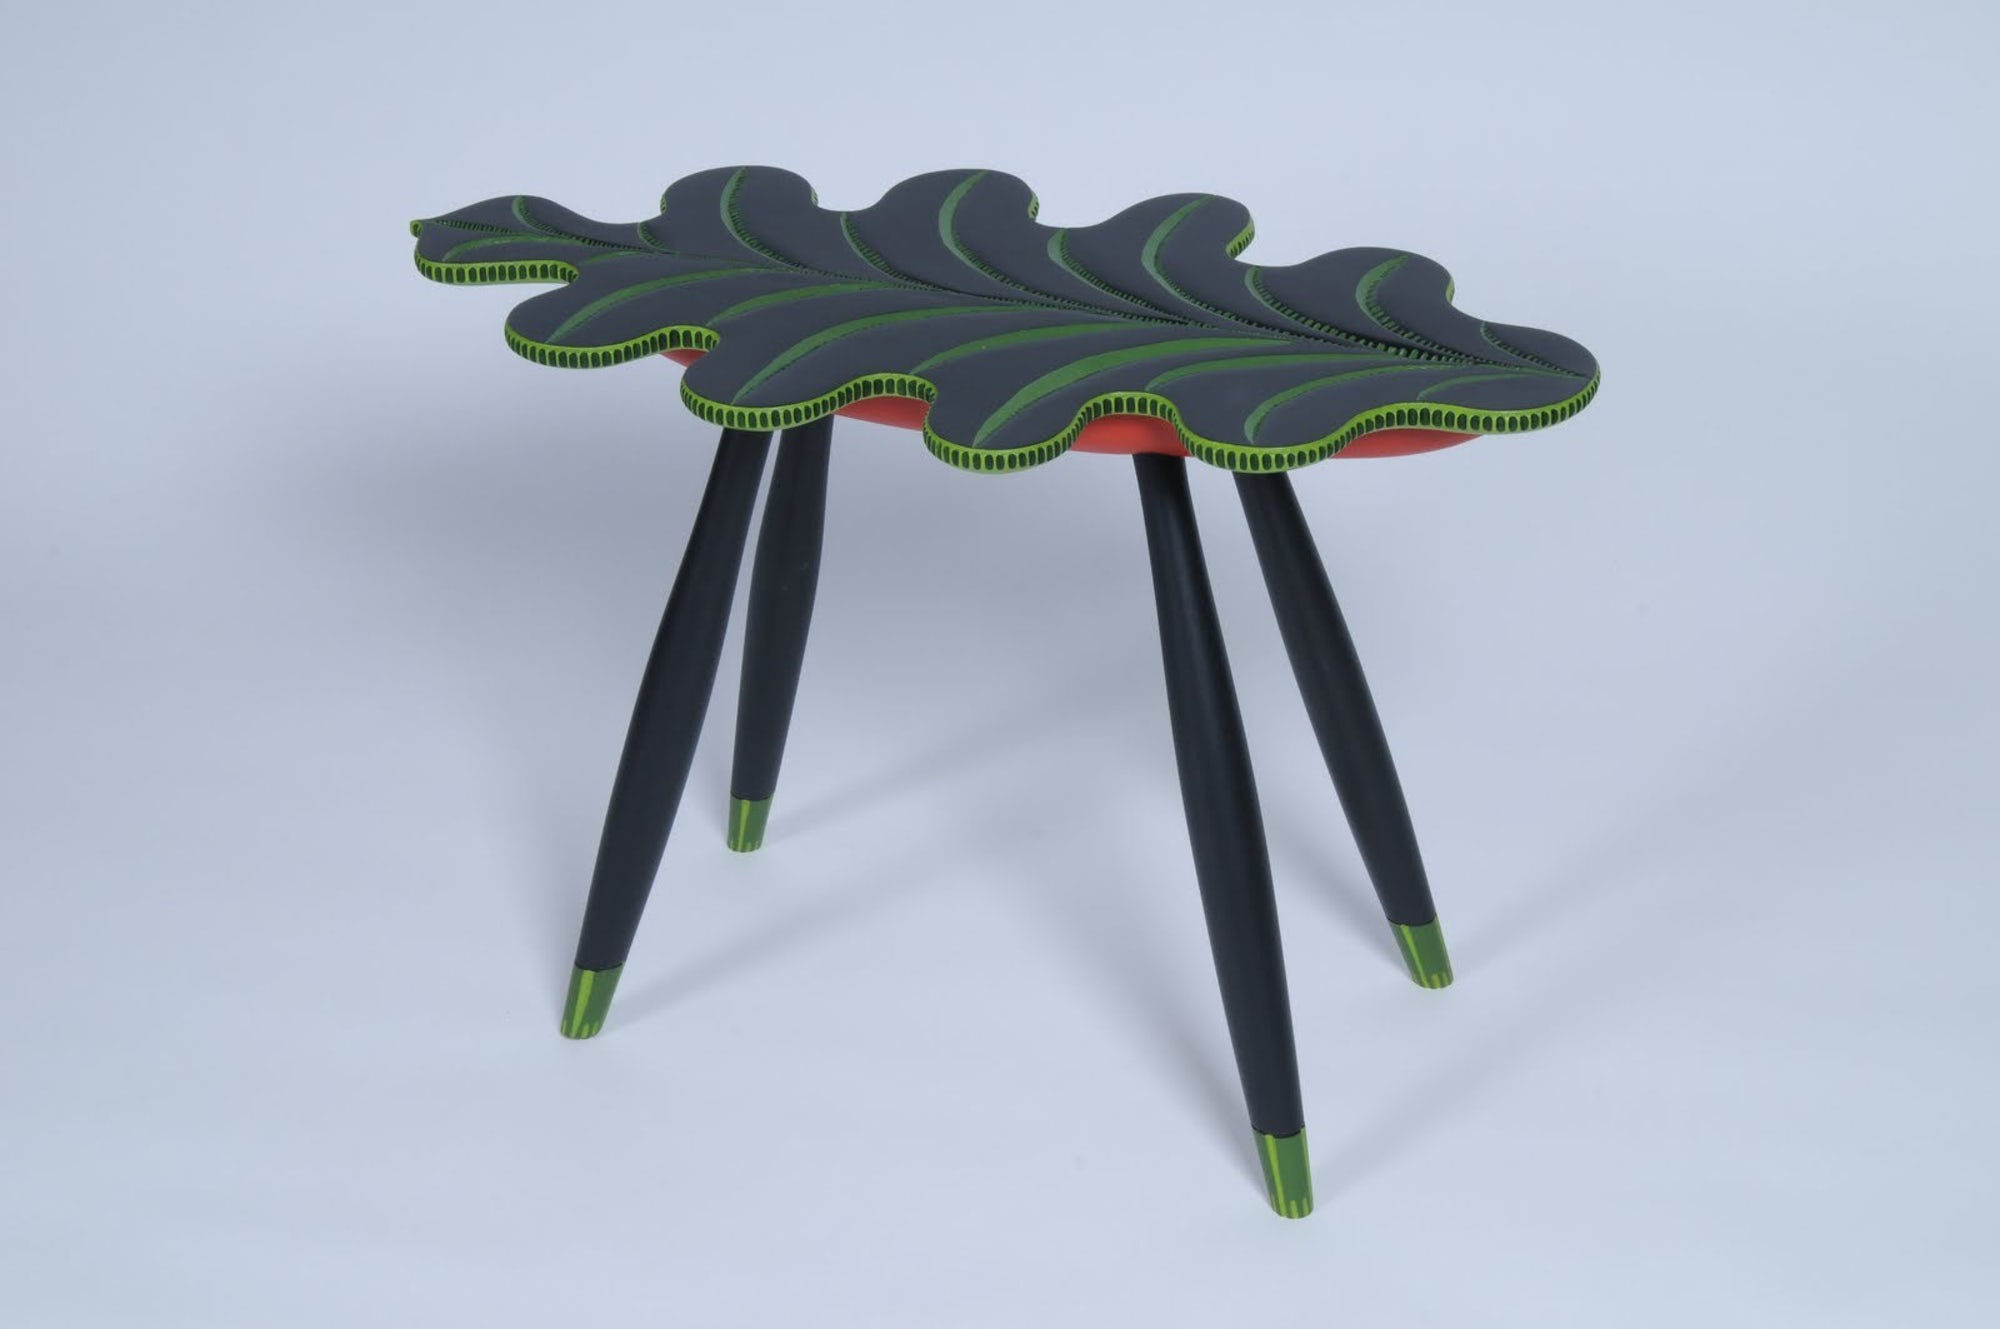 F.1-GARBUS-LEAFBUG-TABLE-2010-Perspective